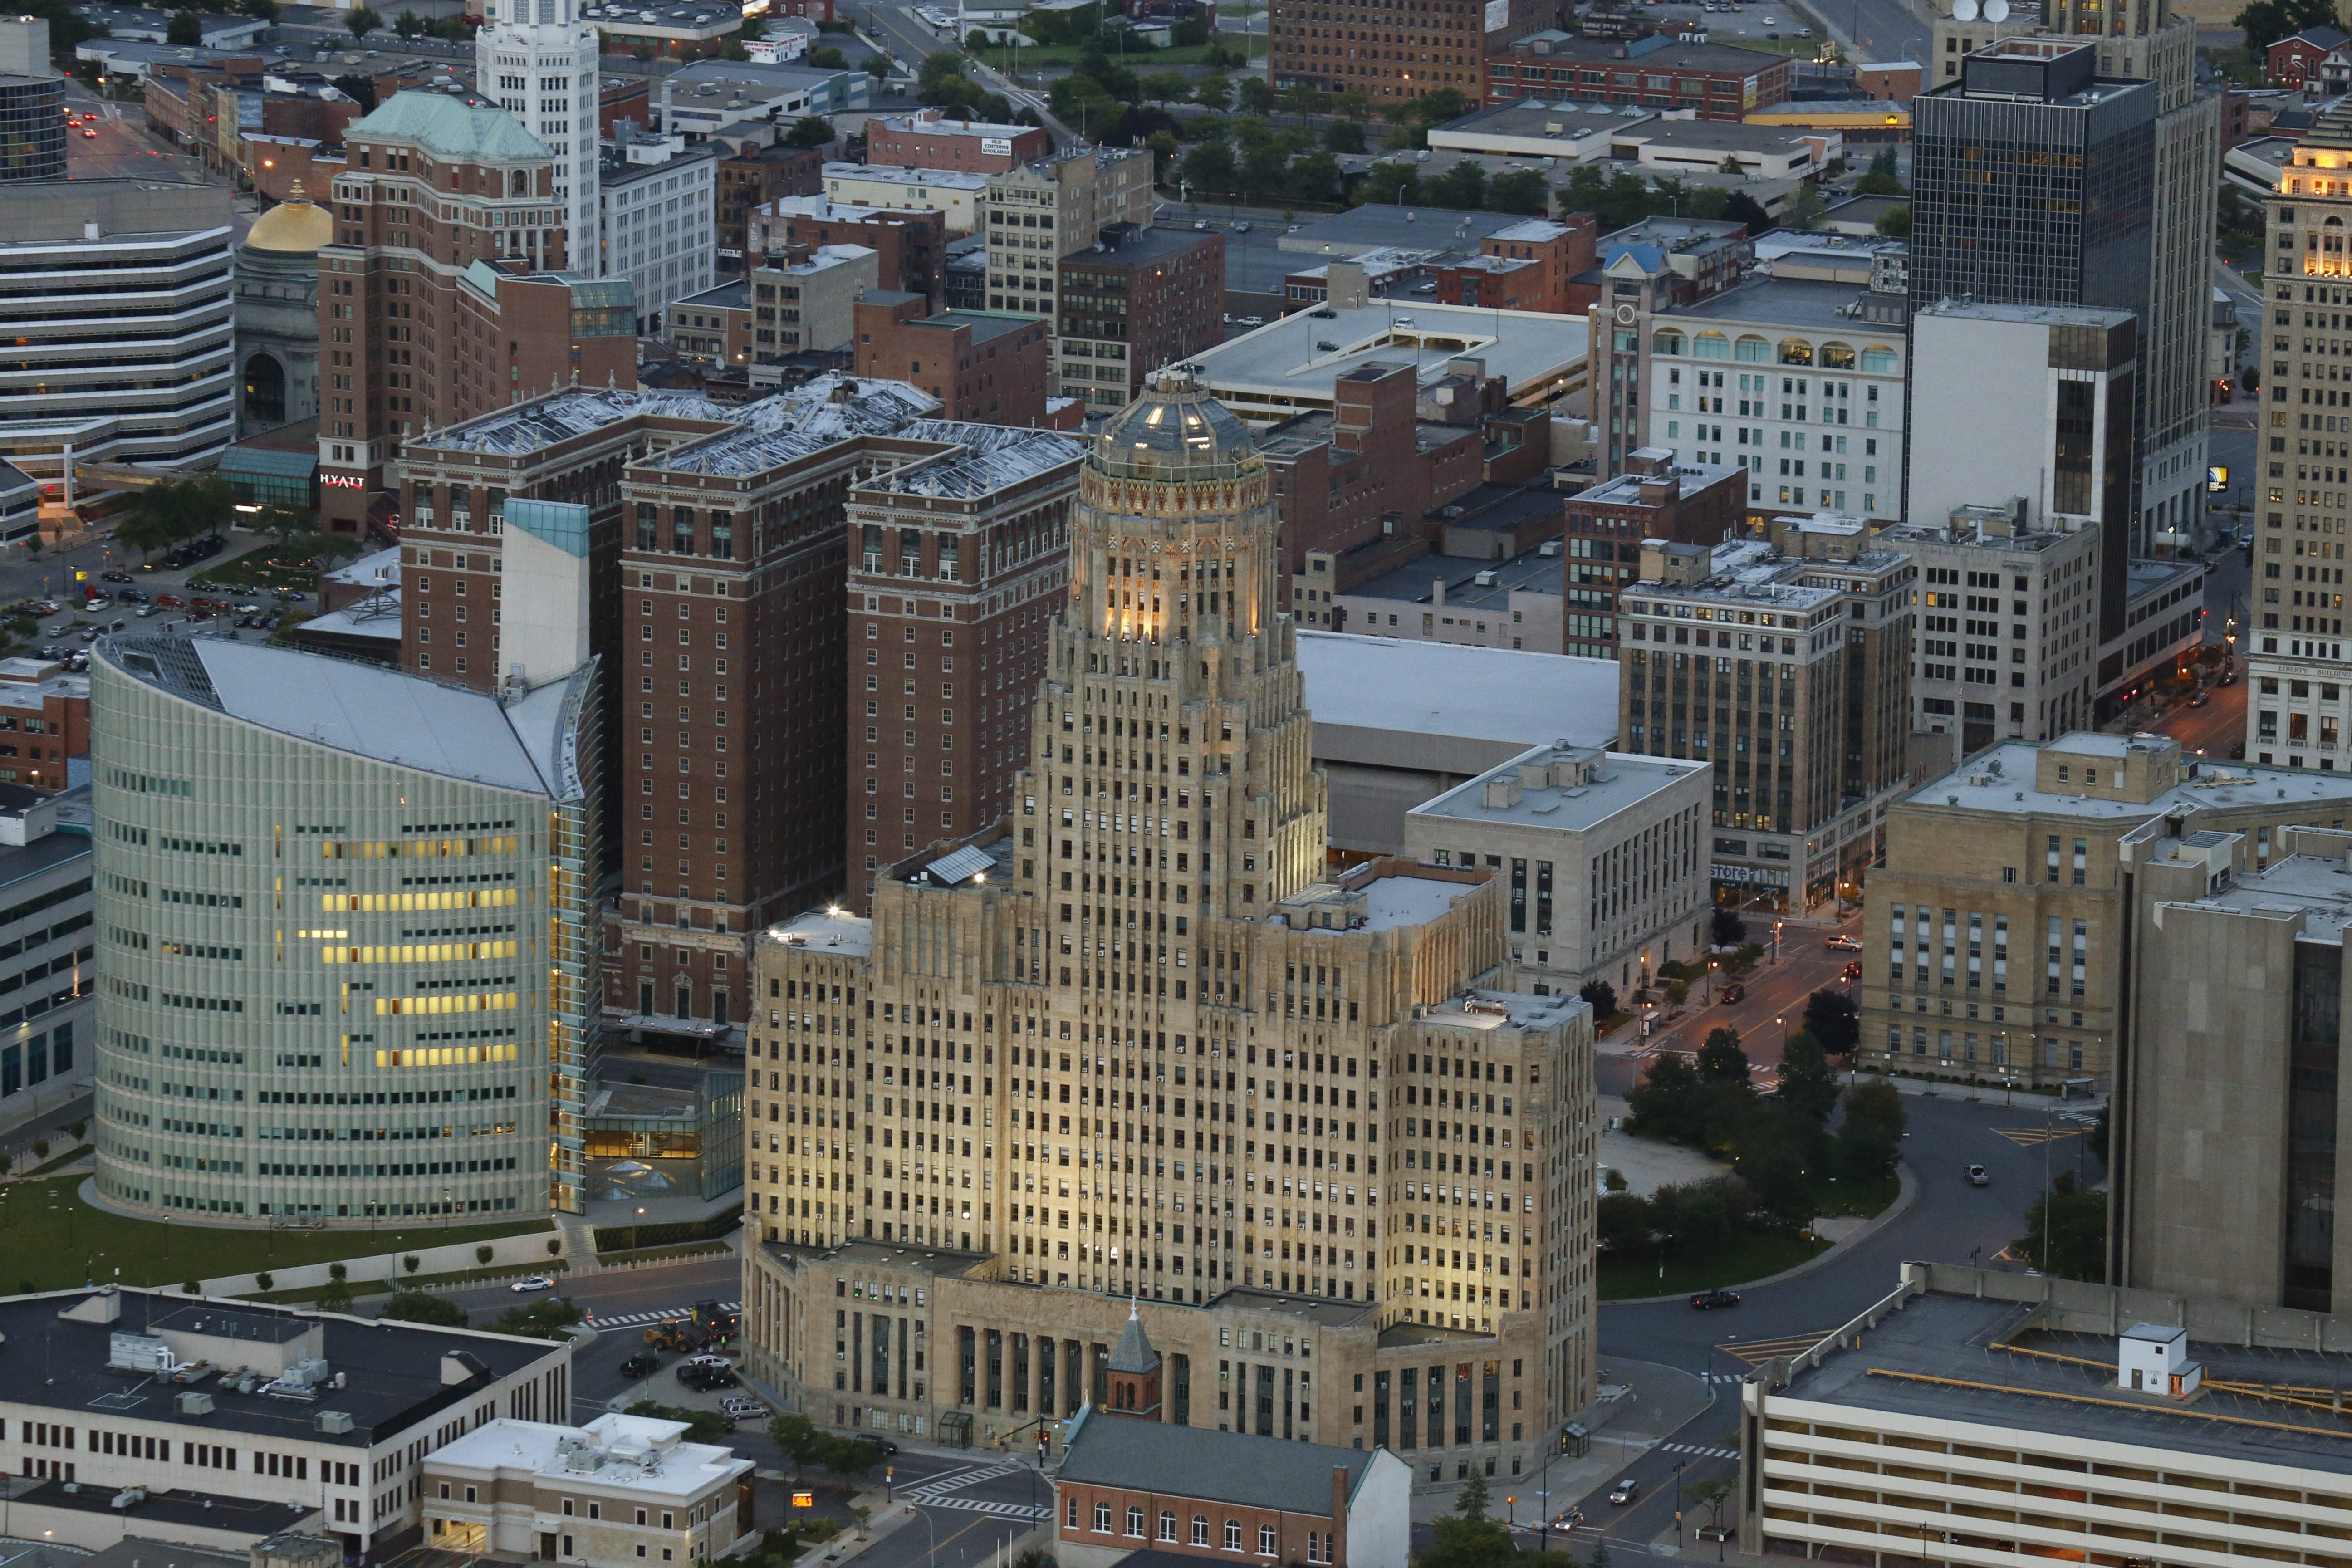 The City of Buffalo is among the sponsors for the second annual The Pitch business plan competition. (Derek Gee/Buffalo News file photo)